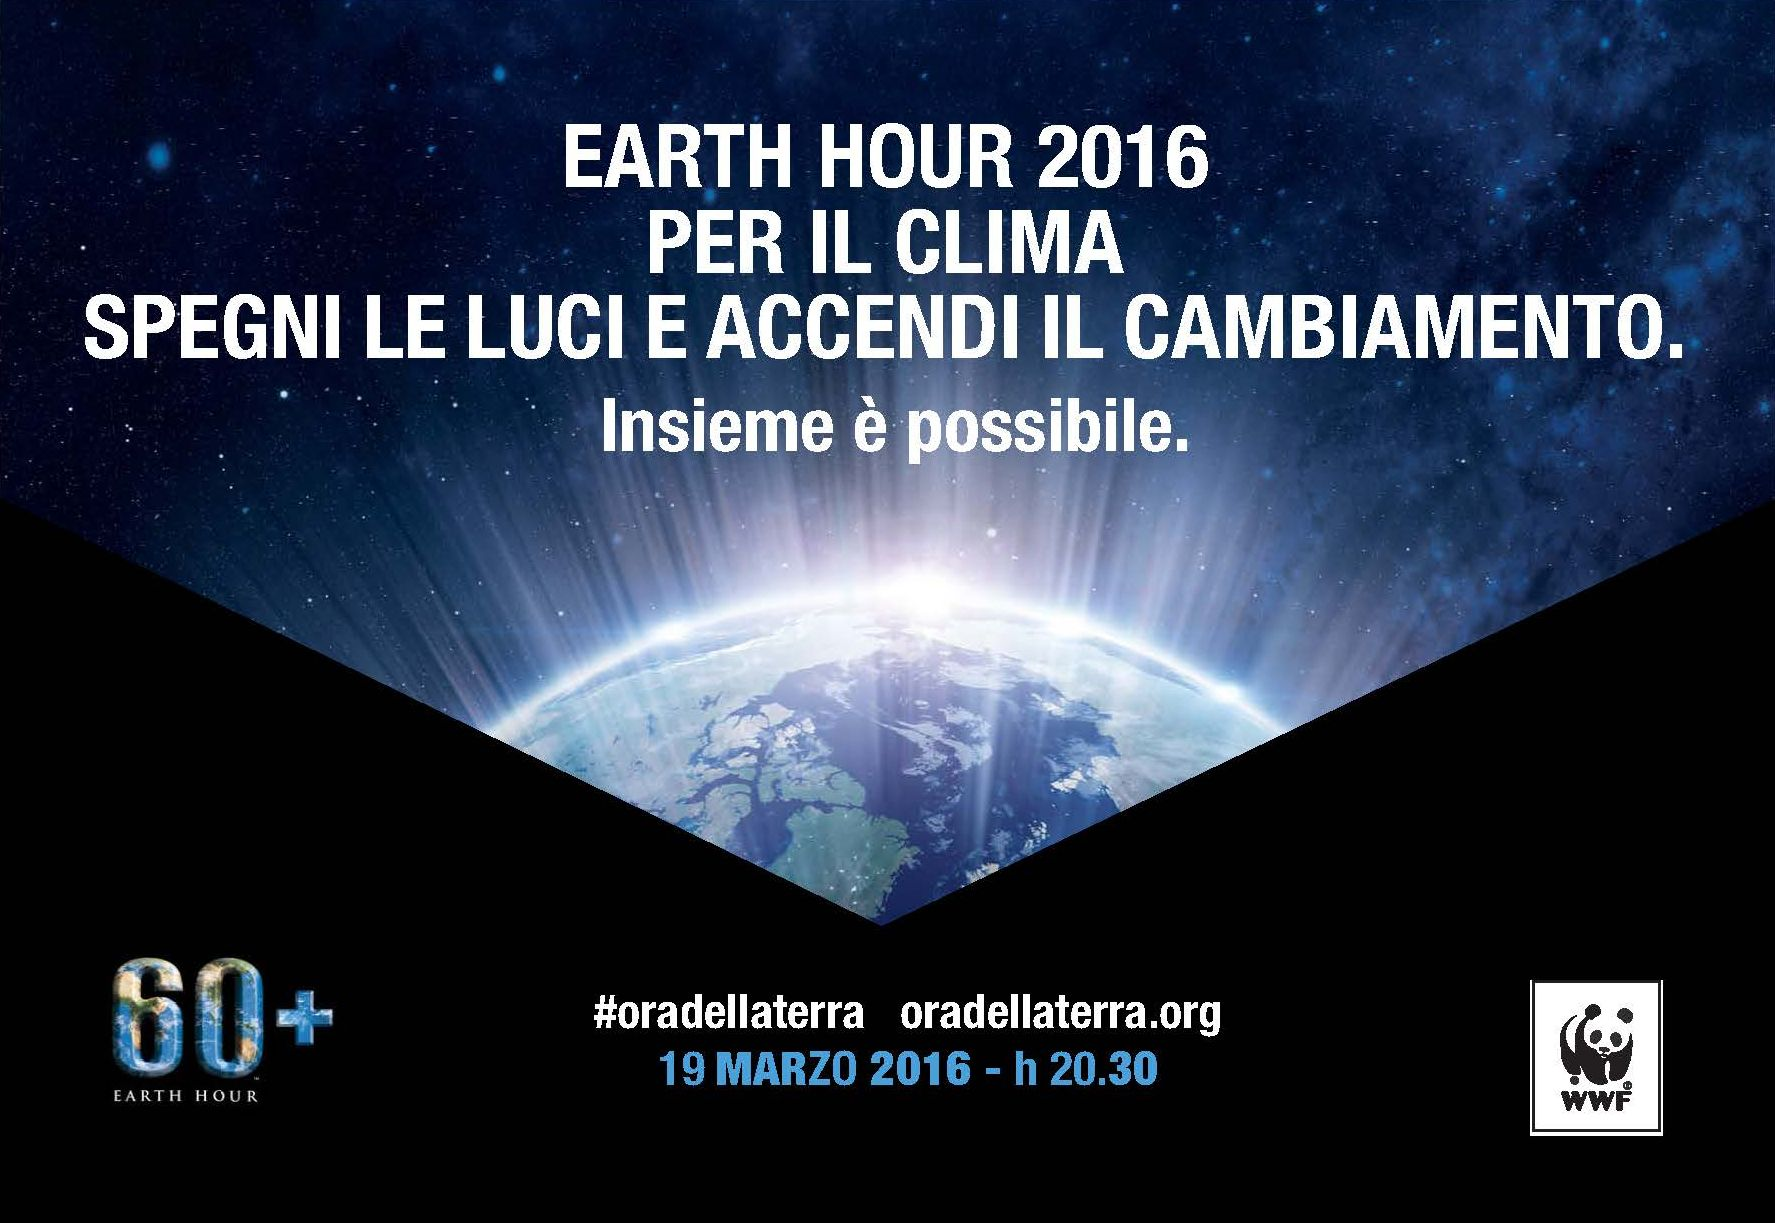 Earth Hour 2016